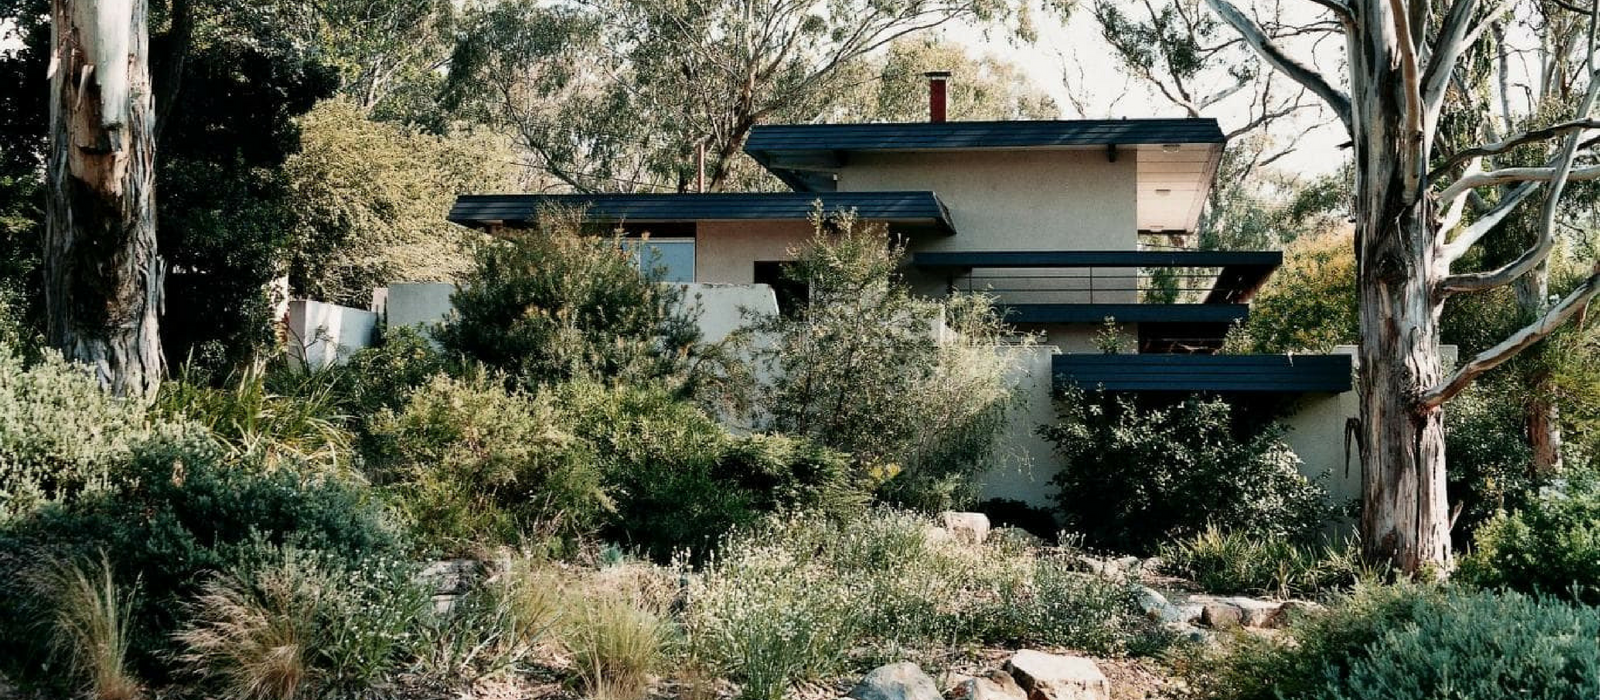 Enrico Taglietti, Dingle House (1965). Photo: Michael Wee